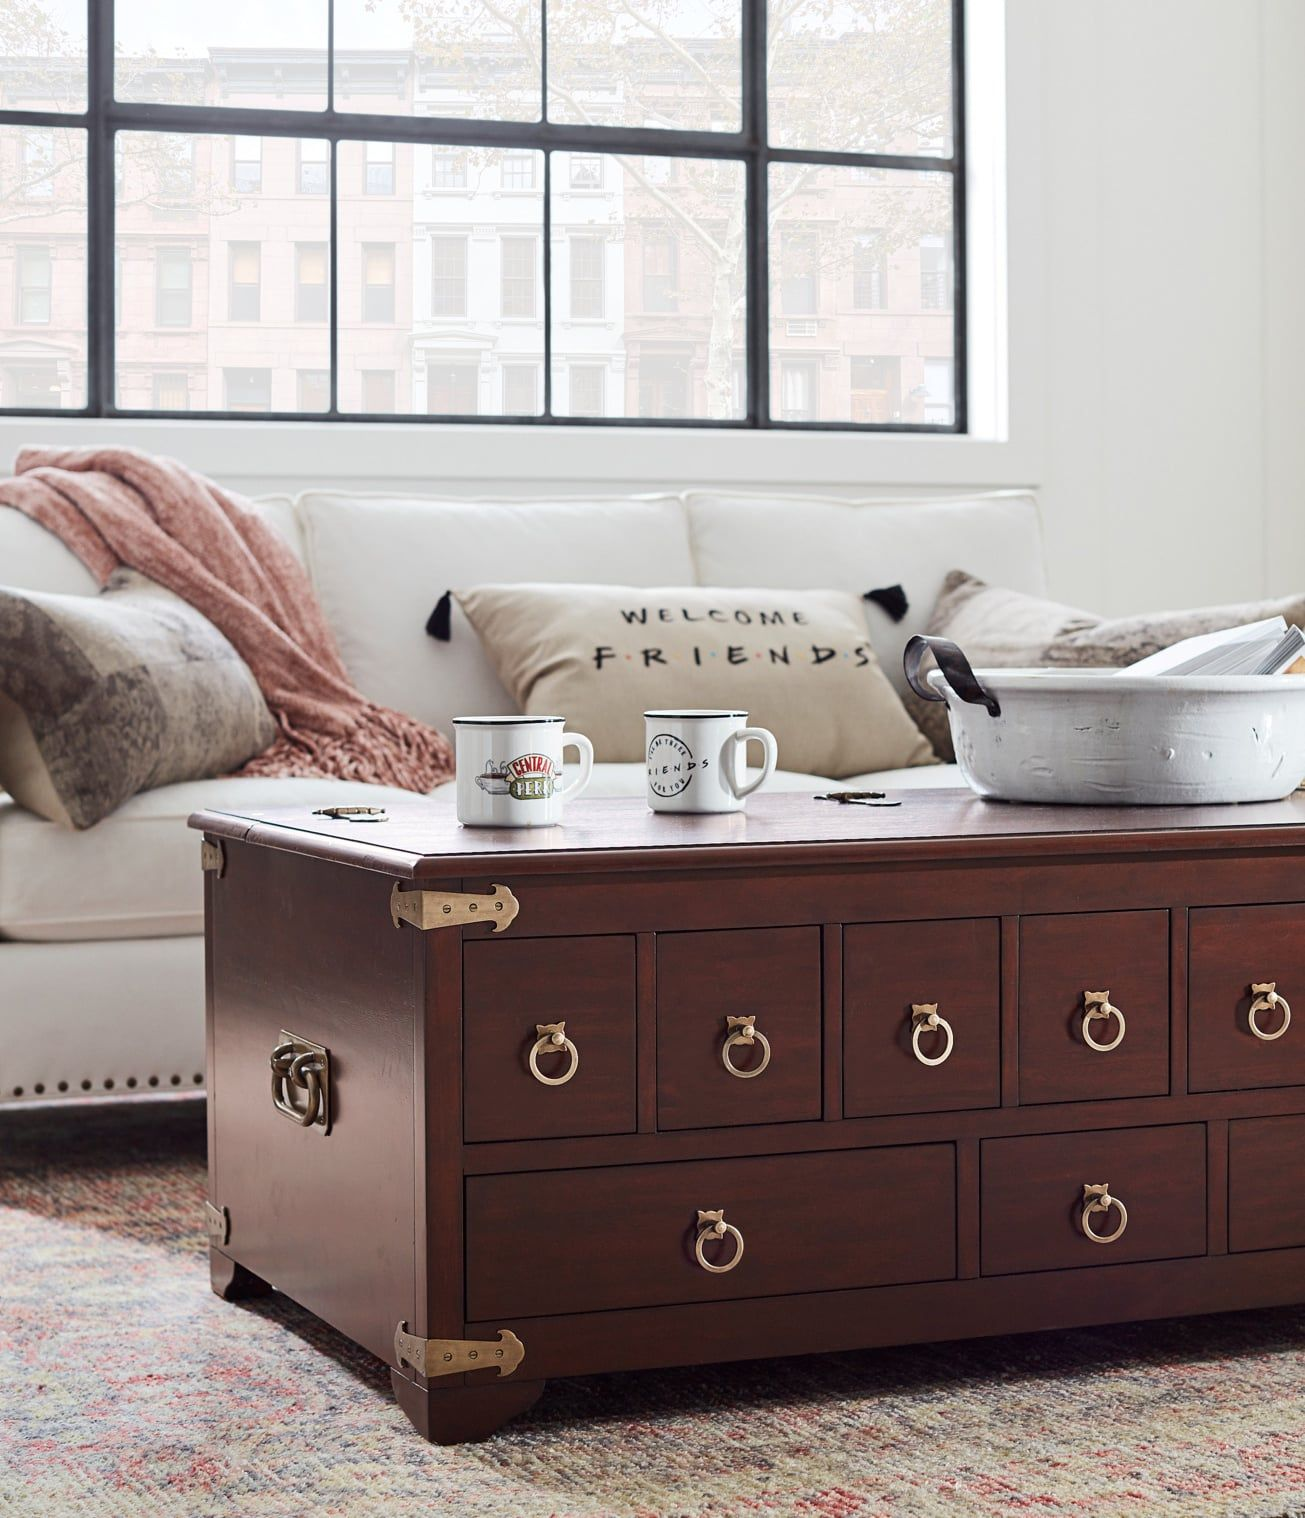 Pottery Barn Is Releasing A Friends Themed Collection And Phoebe Would Definitely Approve Pottery Barn Decor Furniture Collection Home Decor [ 1518 x 1305 Pixel ]